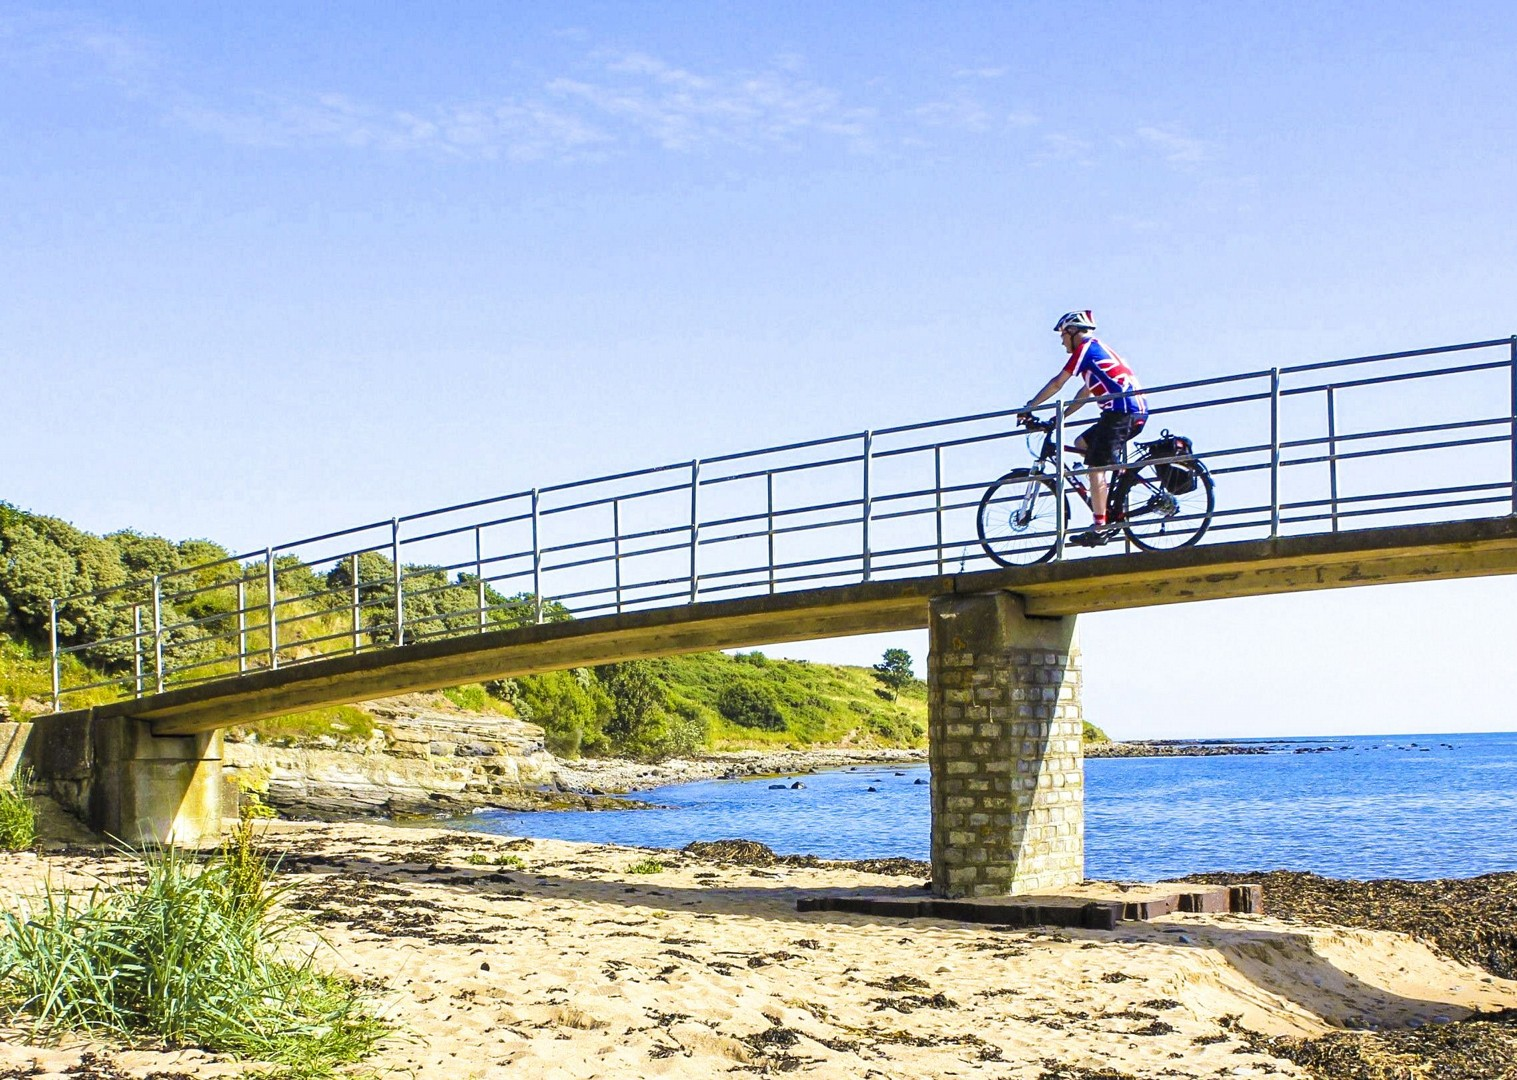 northumberland-coast-cycling-tour-alnmouth-guided-leisure.jpg - UK - Northumberland - Alnmouth - Guided Leisure Cycling Holiday - Leisure Cycling